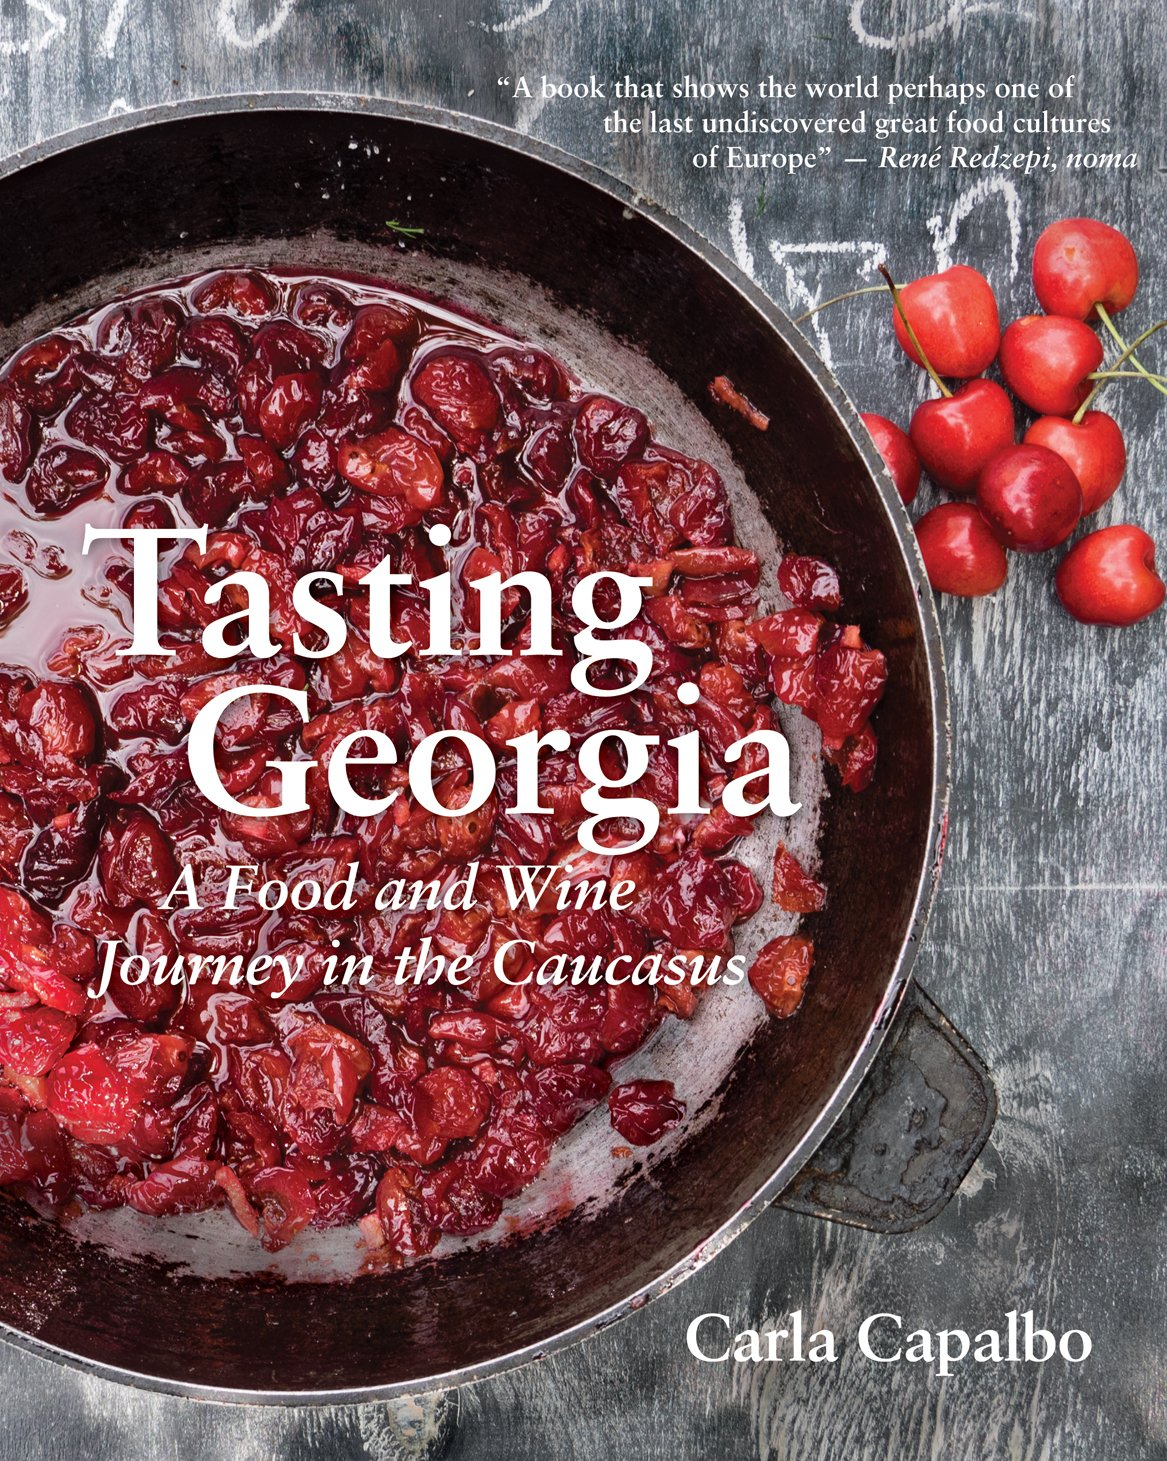 Tasting georgia a food and wine journey in the caucasus carla tasting georgia a food and wine journey in the caucasus carla capalbo 9781566560597 amazon books fandeluxe Gallery